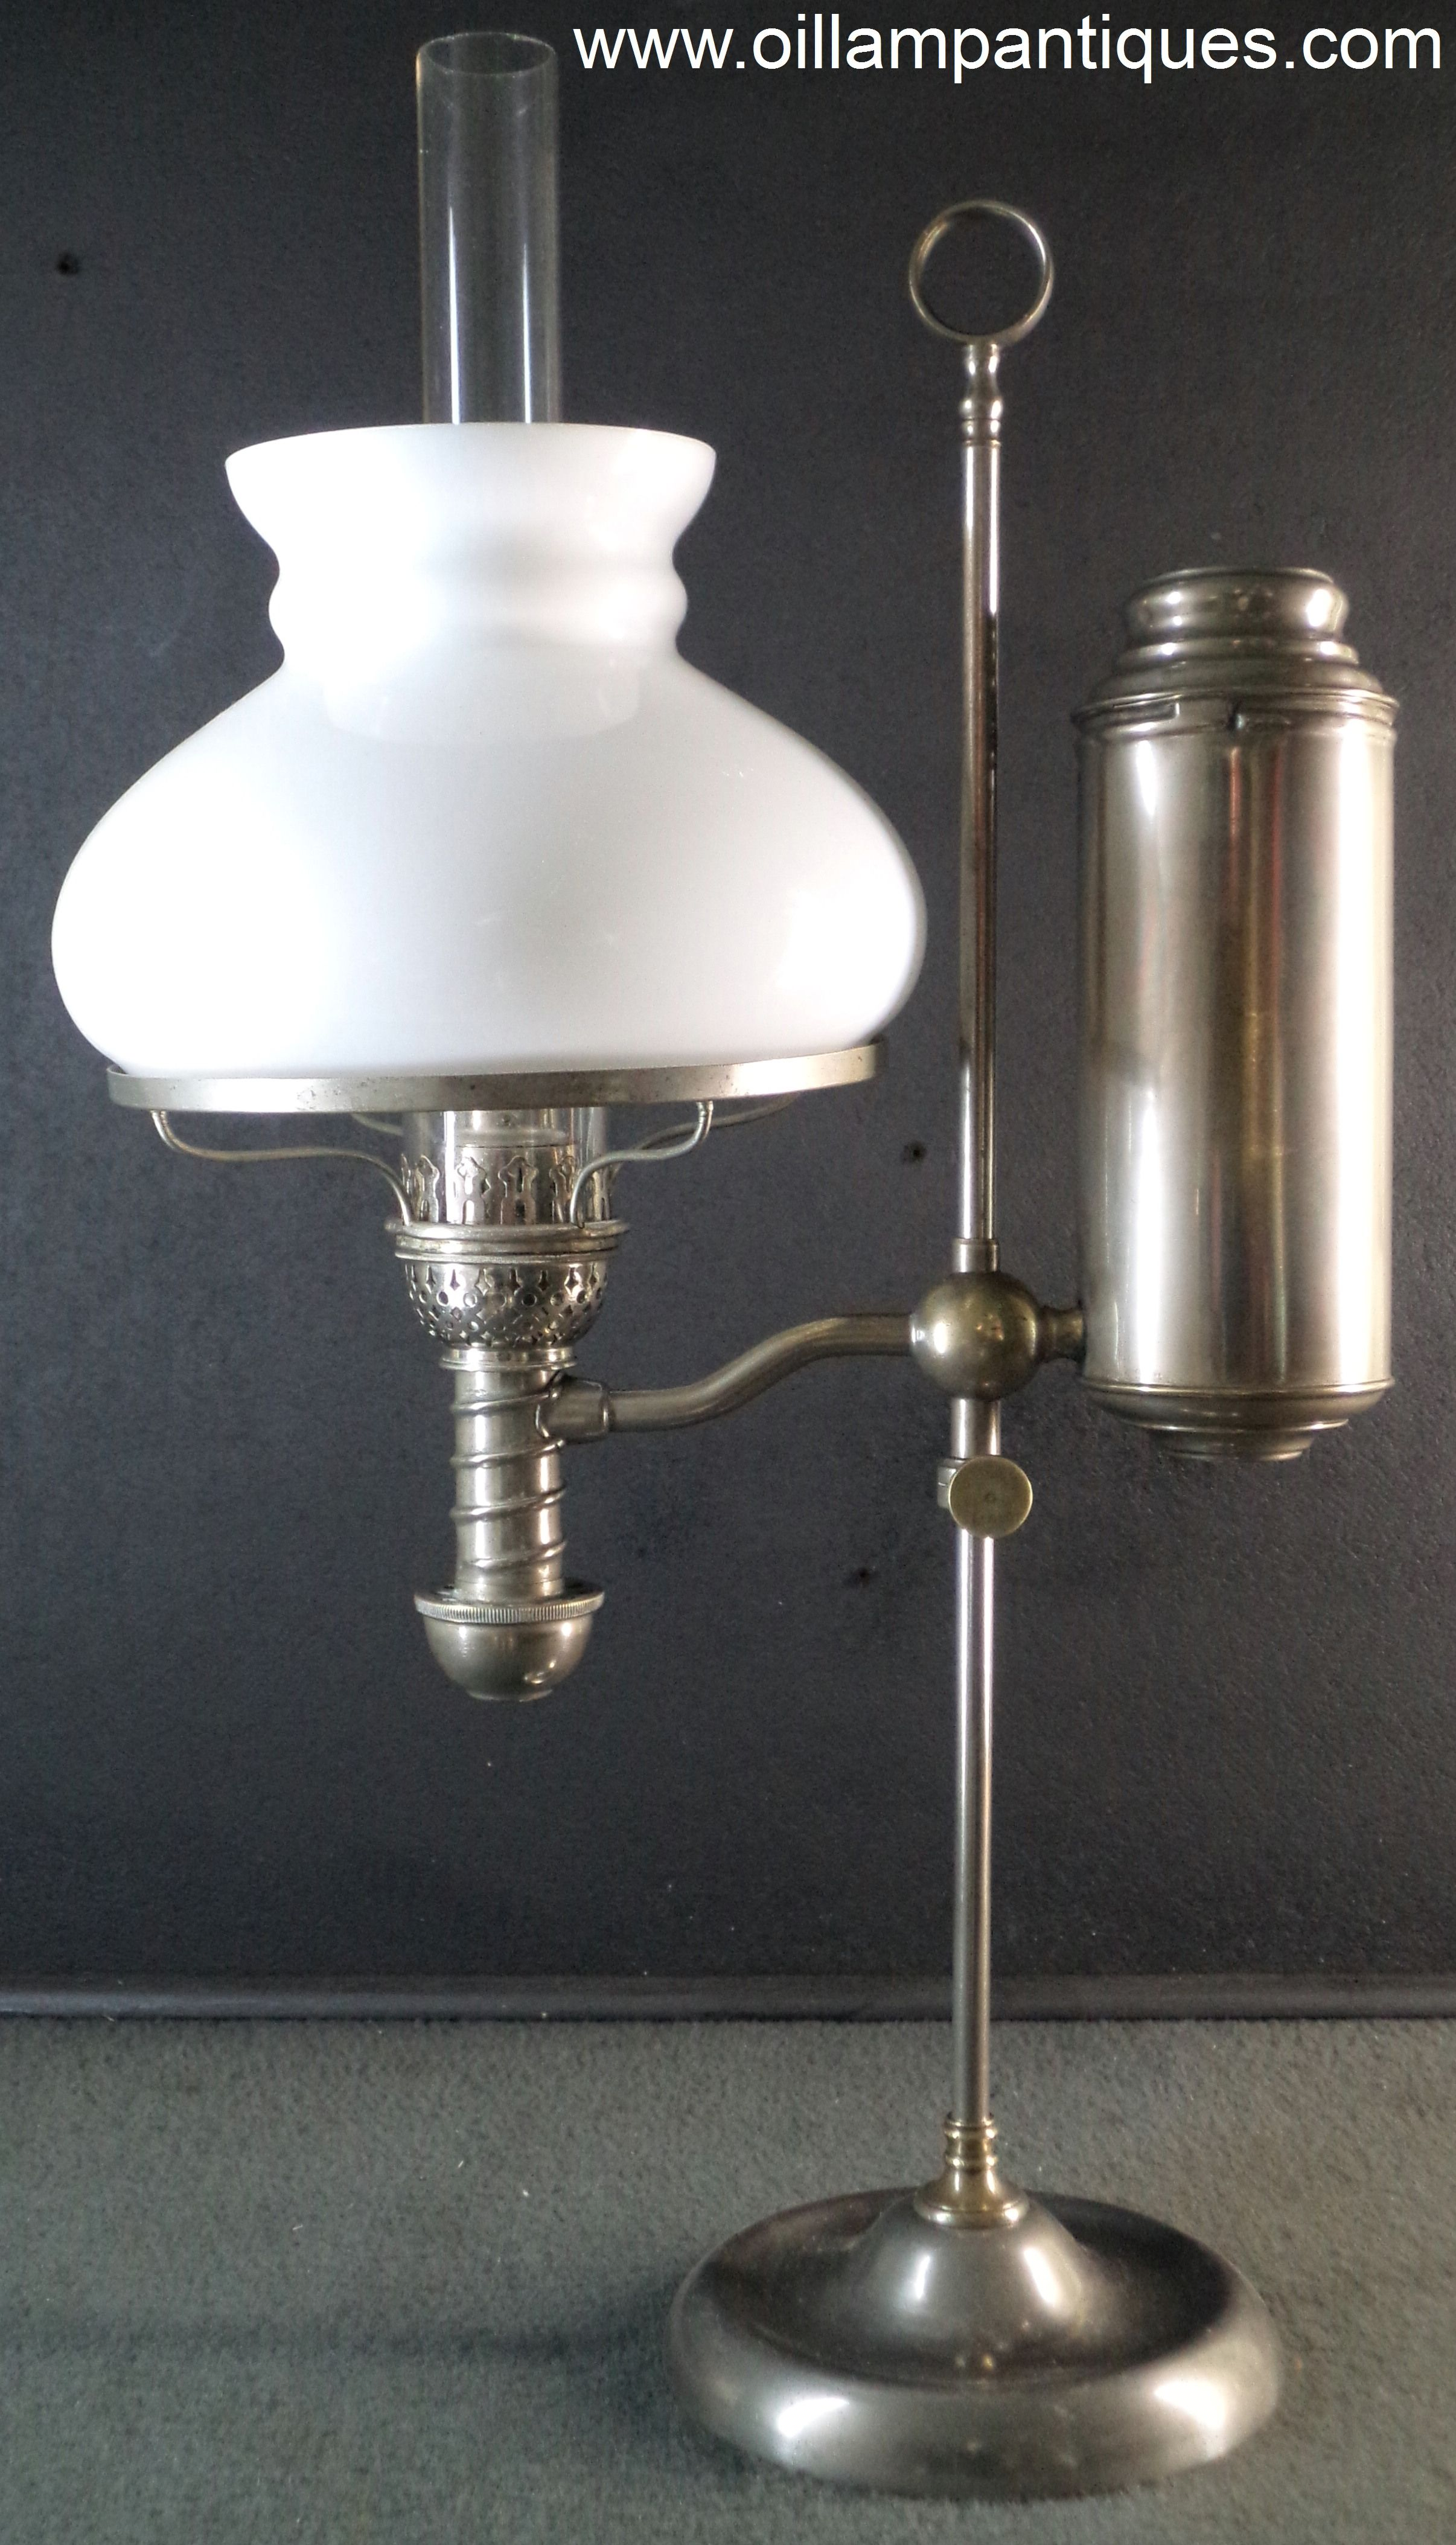 This manhattan student lamp is complete with an original opal this manhattan student lamp is complete with an original opal glass shade it was aloadofball Gallery